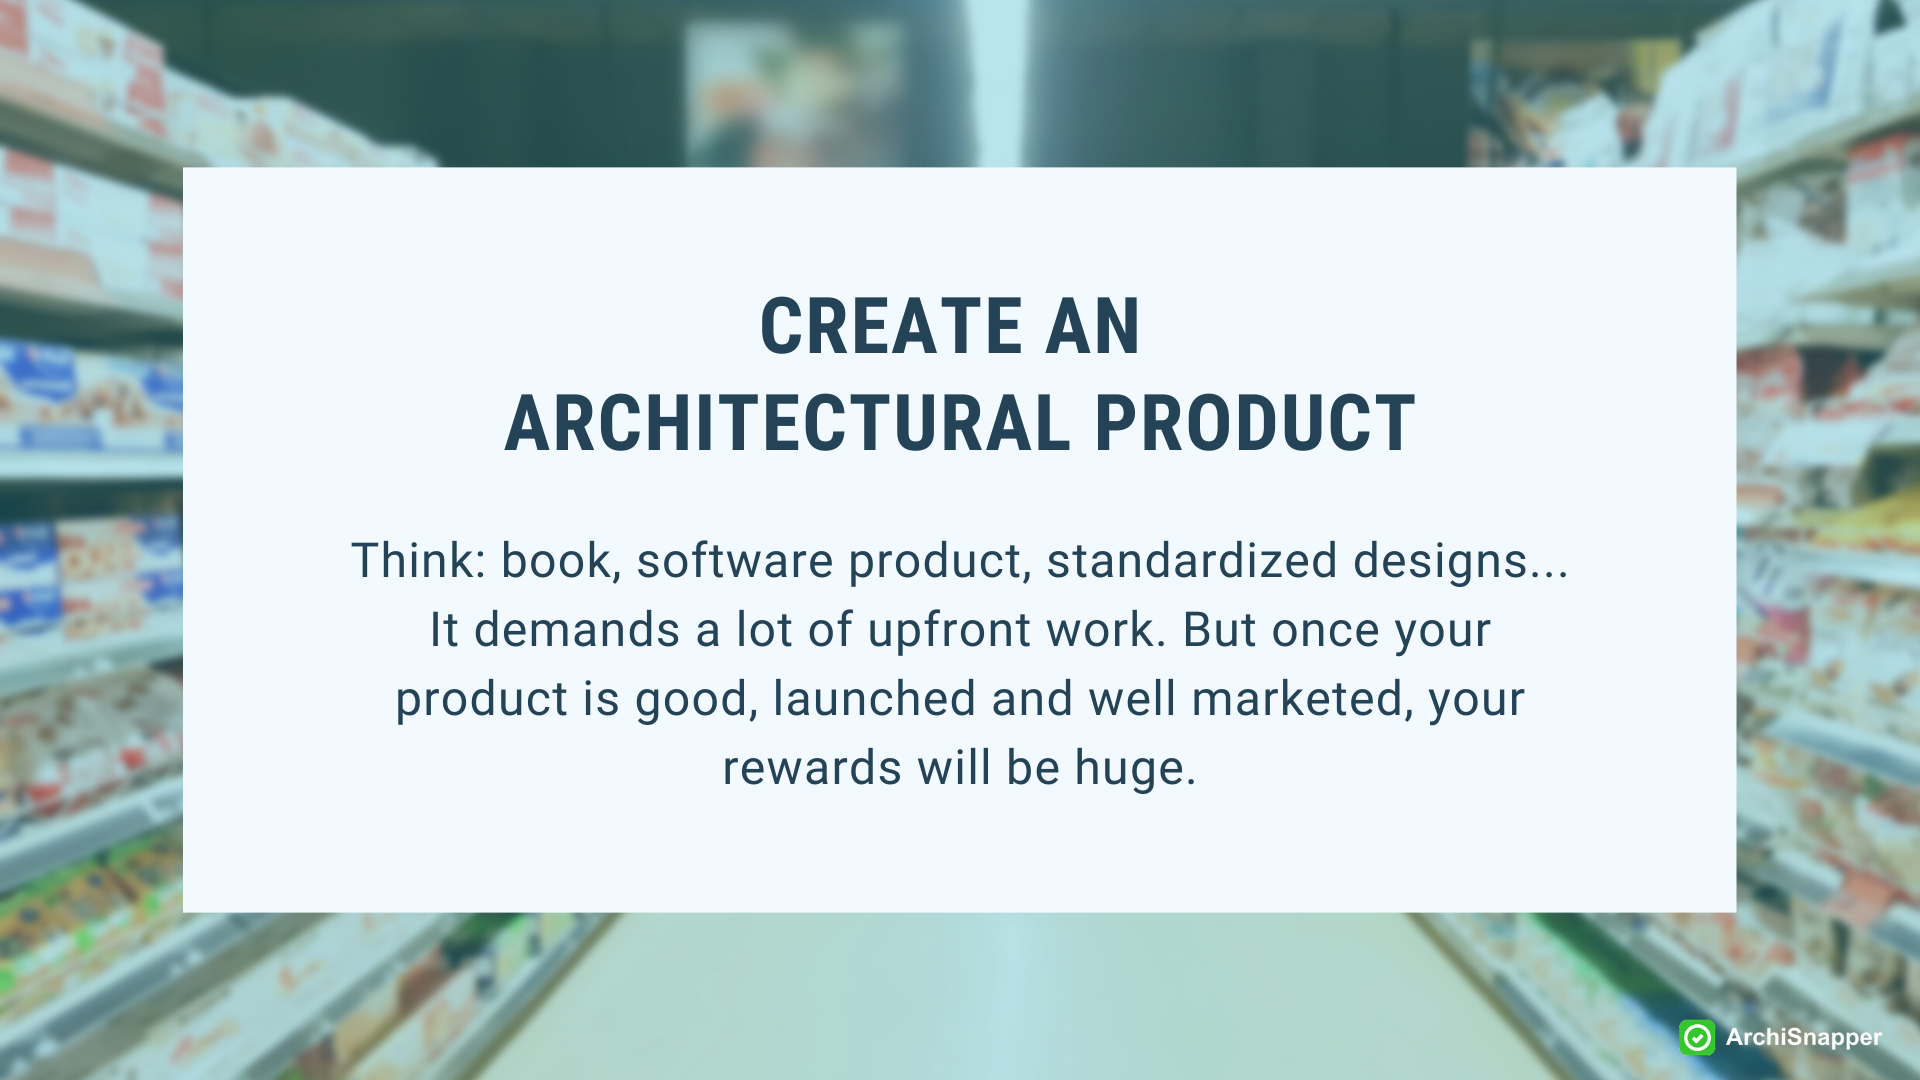 Create an architectural product | ArchiSnapper